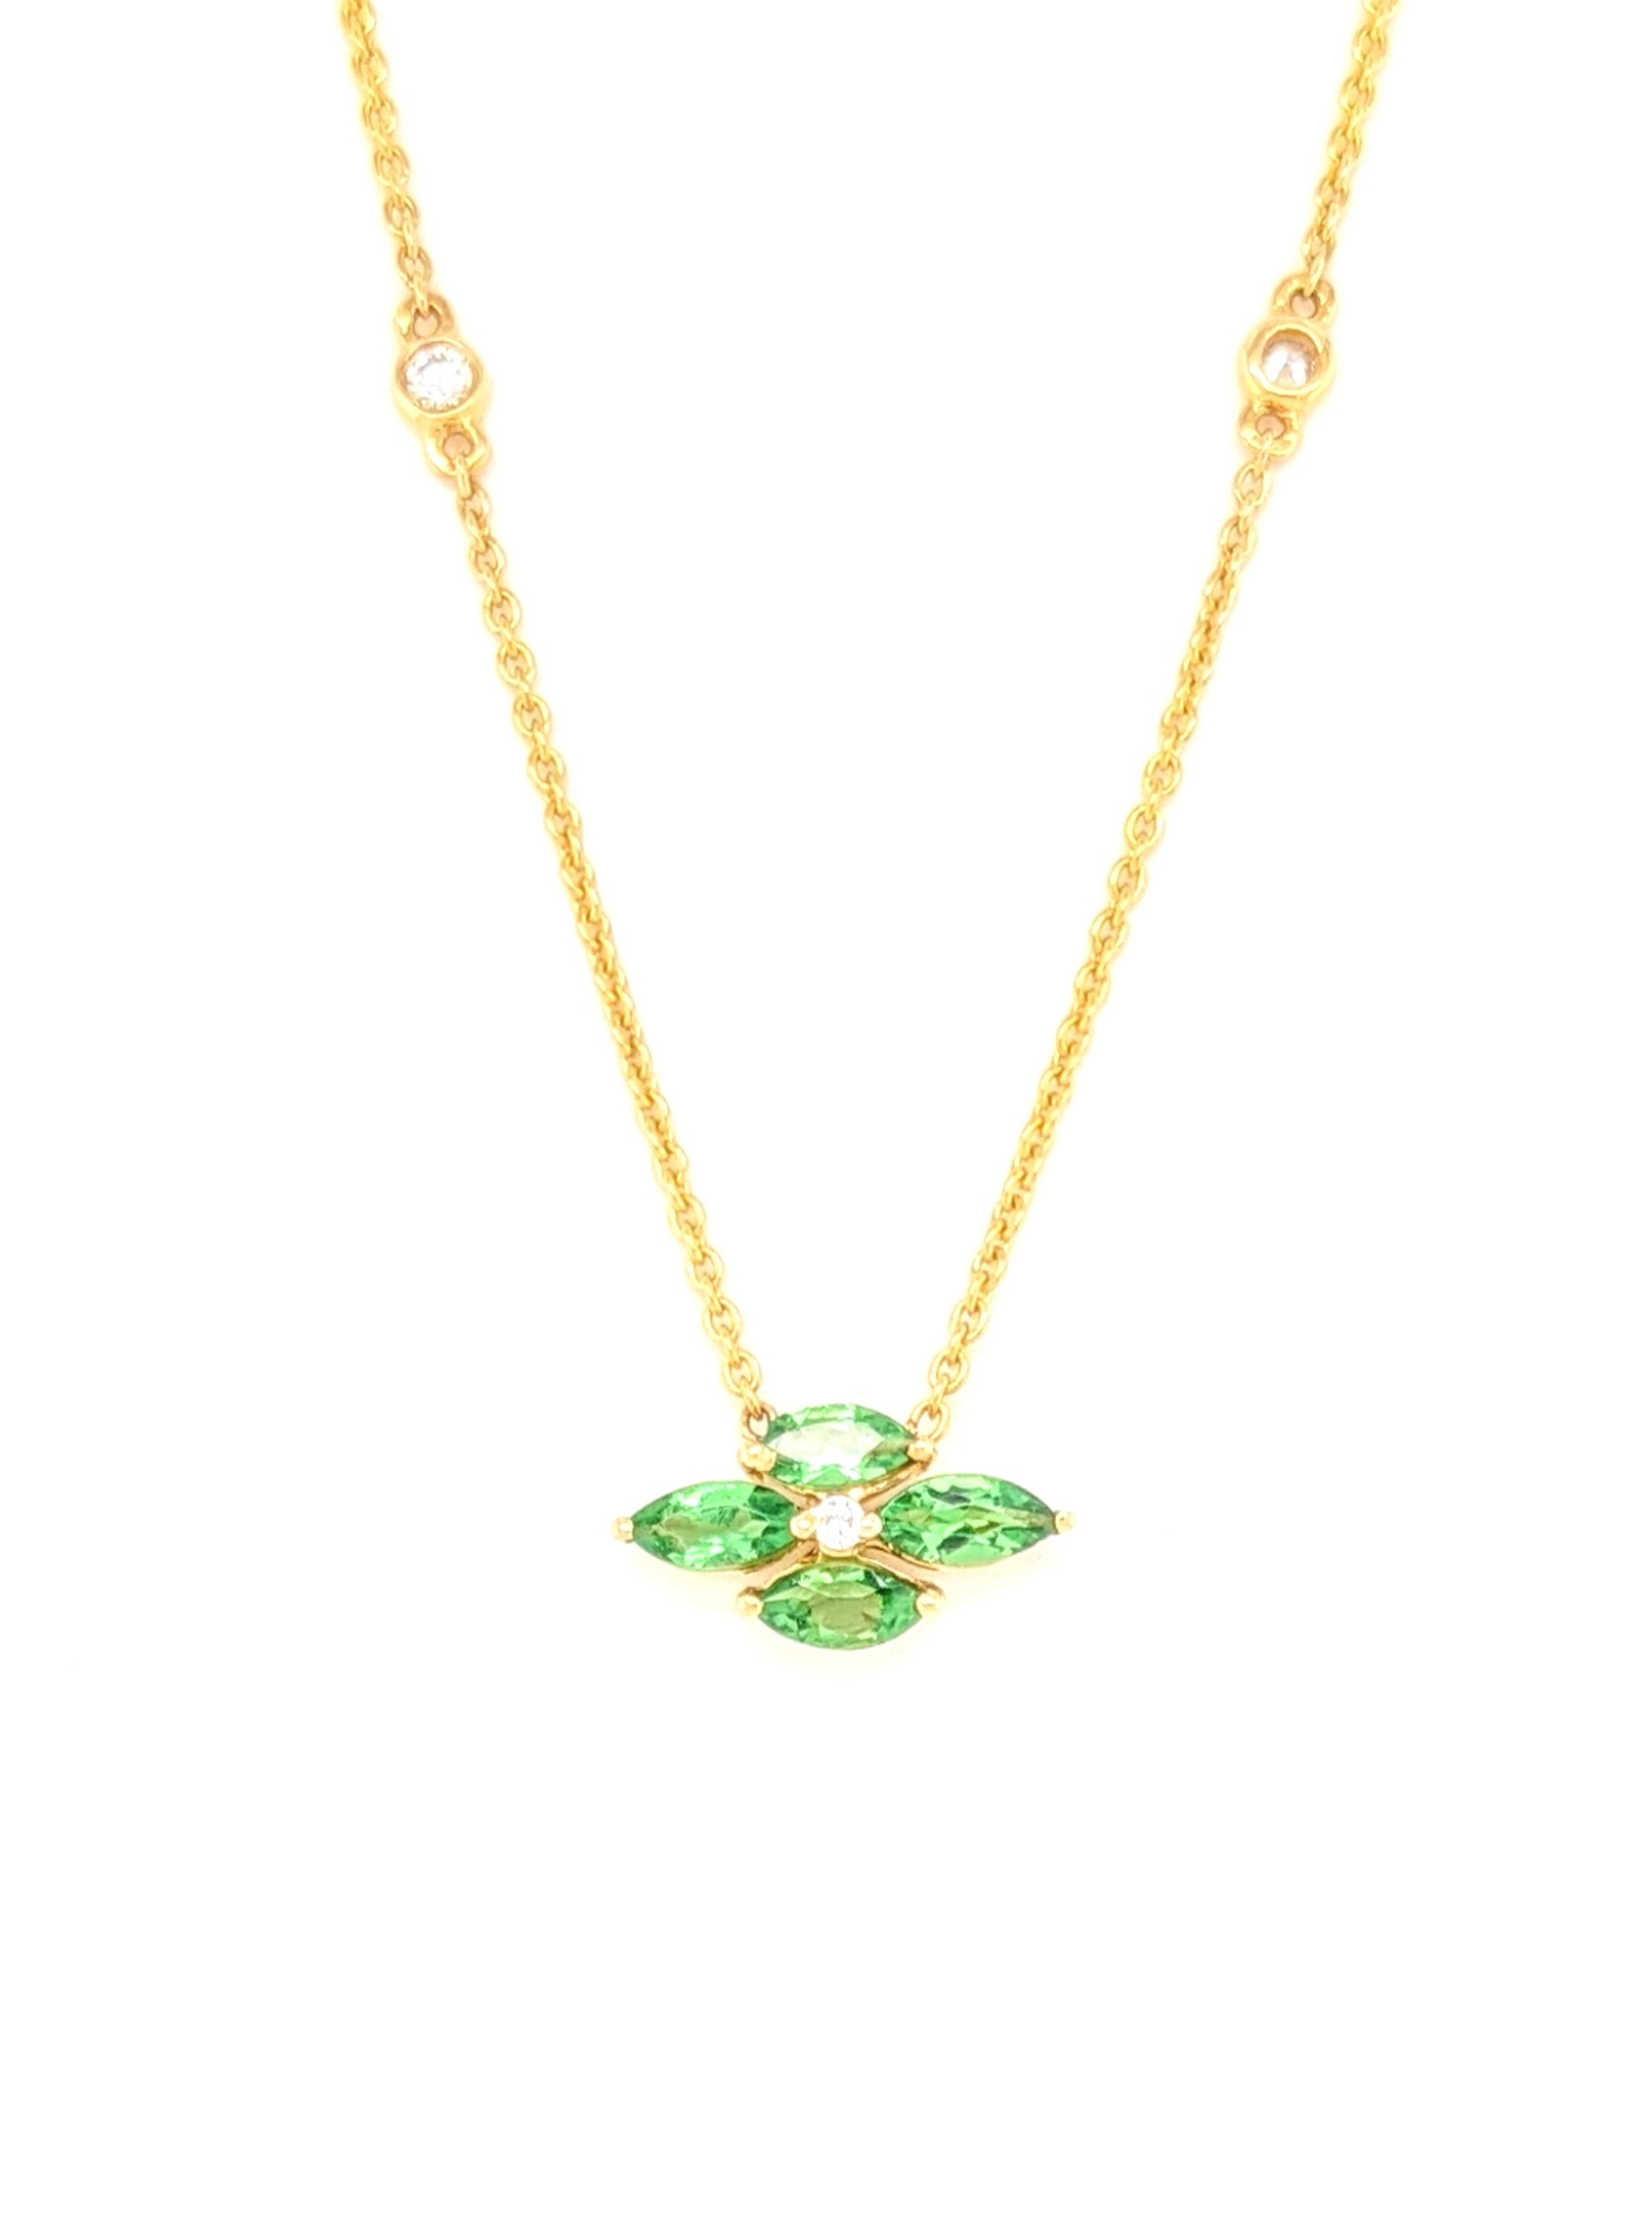 Diamond and Tsavorite Floral Necklace